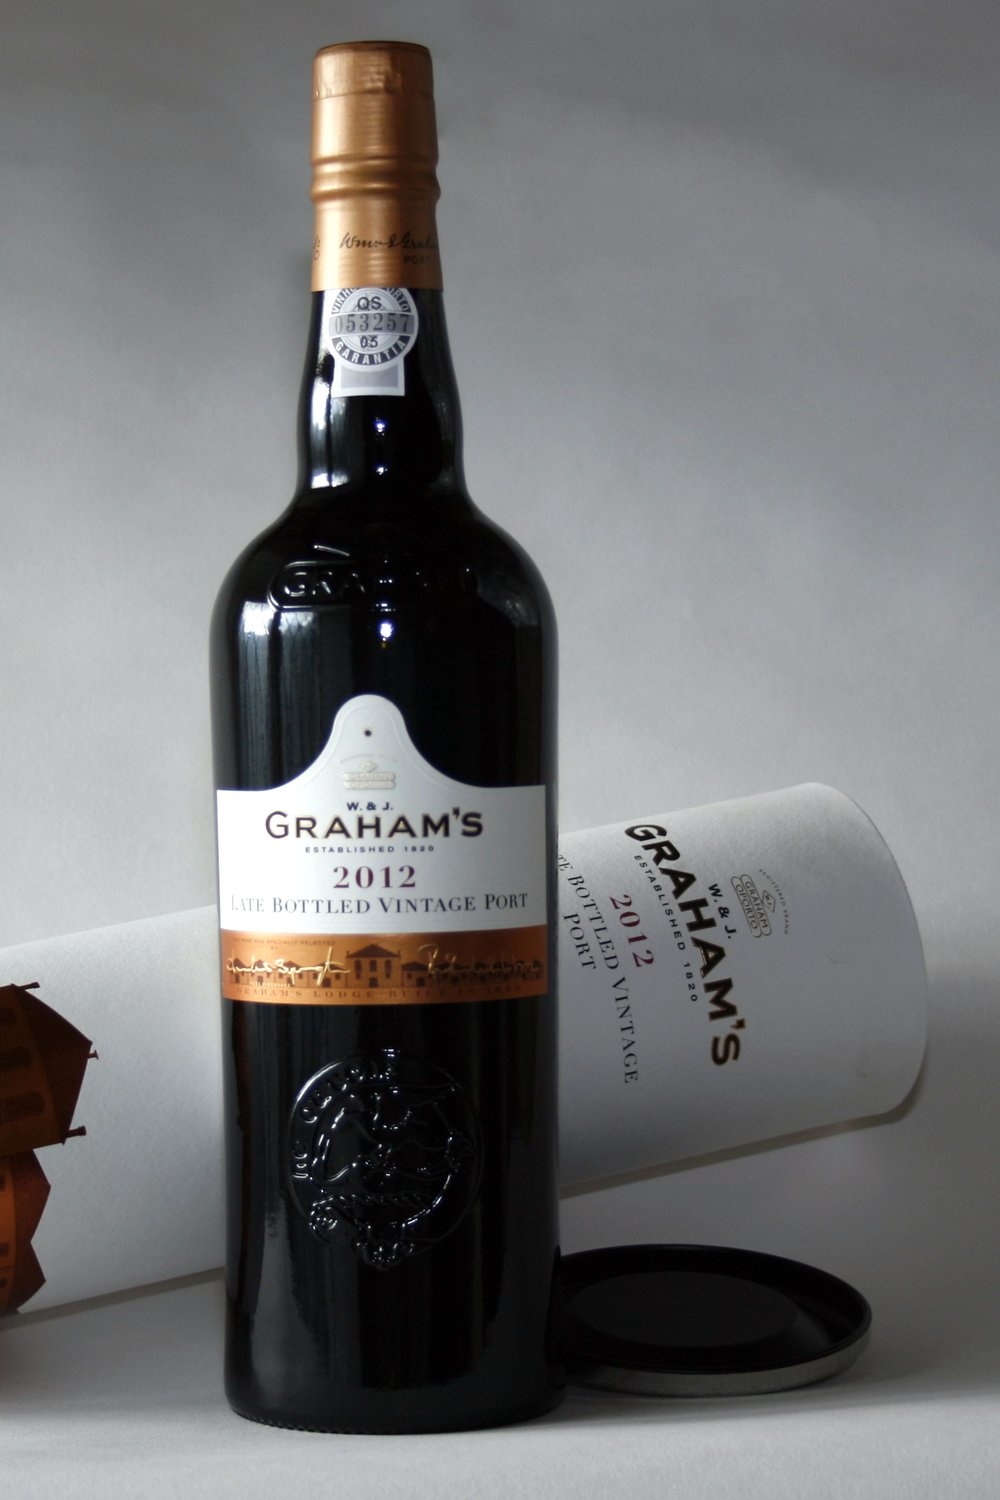 Graham's 2012 Late Bottled Vintage Port - DETAILS TO COME